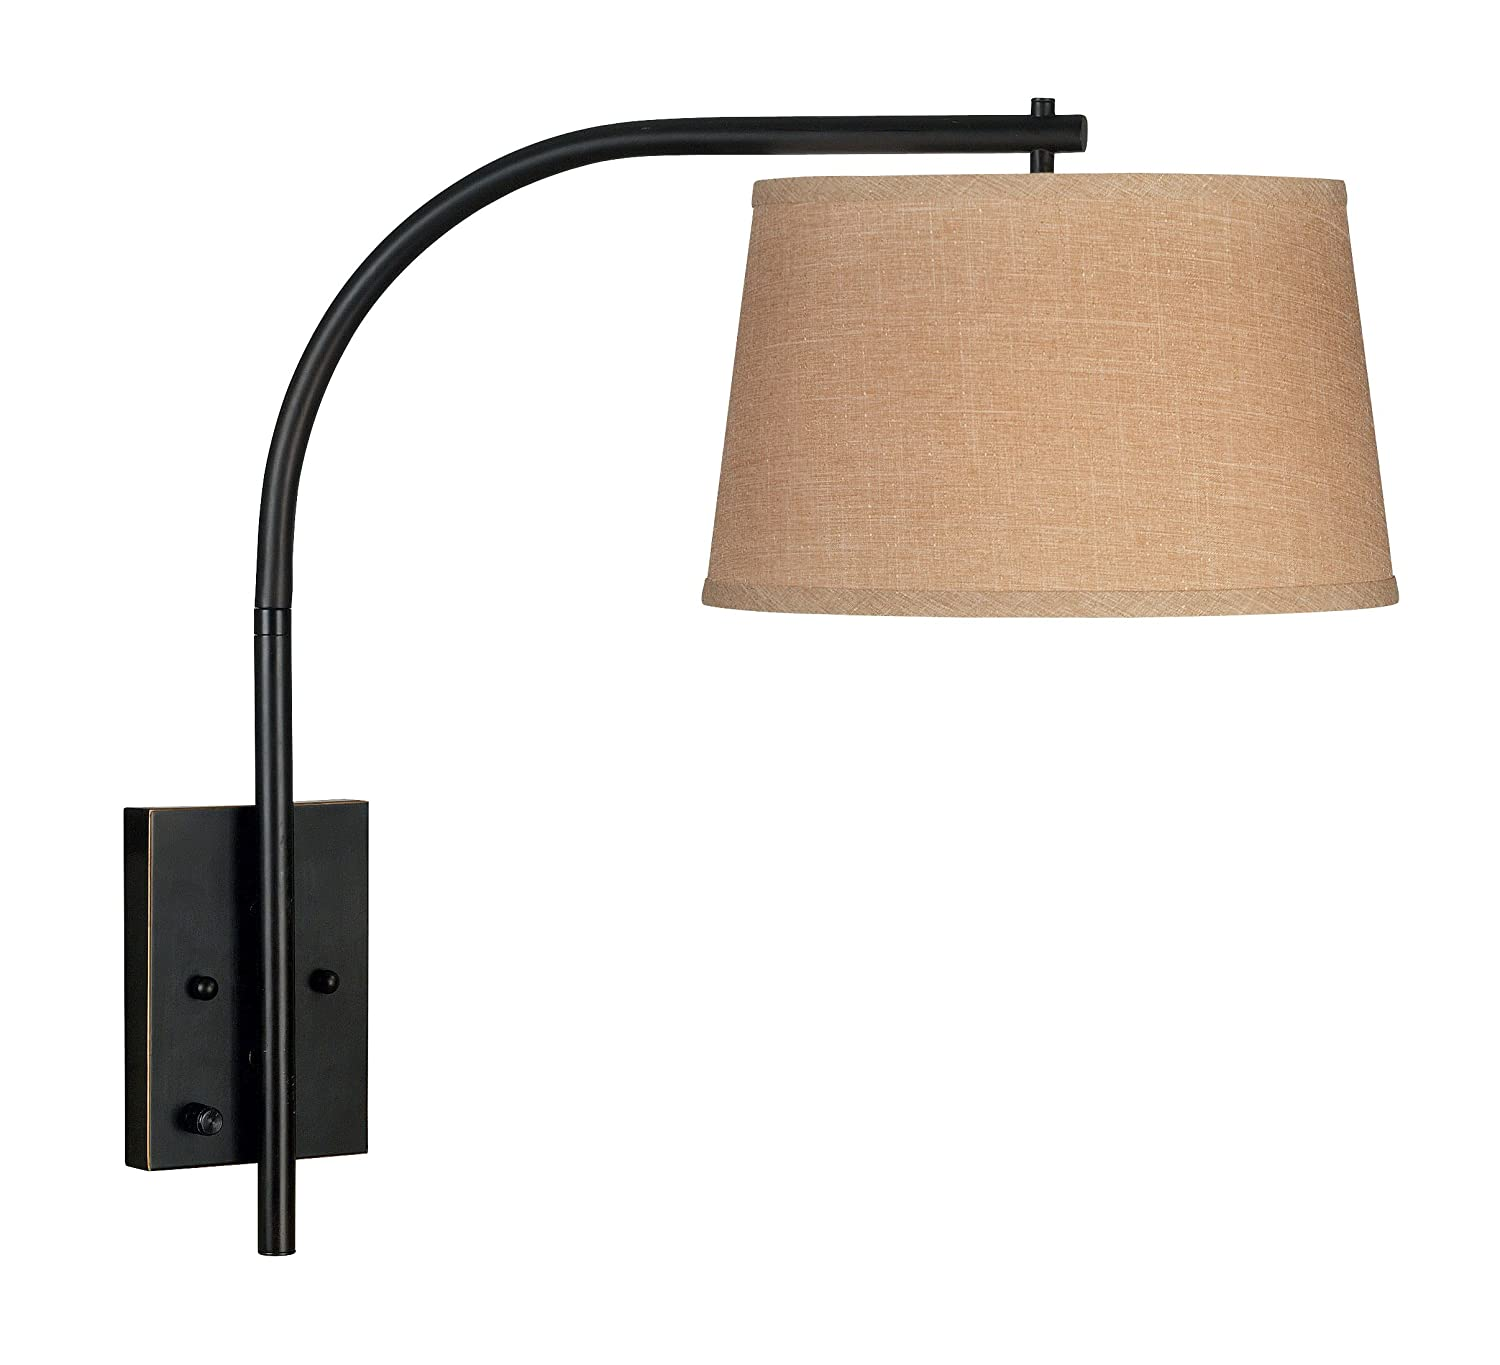 kenroy home orb sweep wall swing arm lamp oil rubbed bronze  tablelamps  amazoncom. kenroy home orb sweep wall swing arm lamp oil rubbed bronze